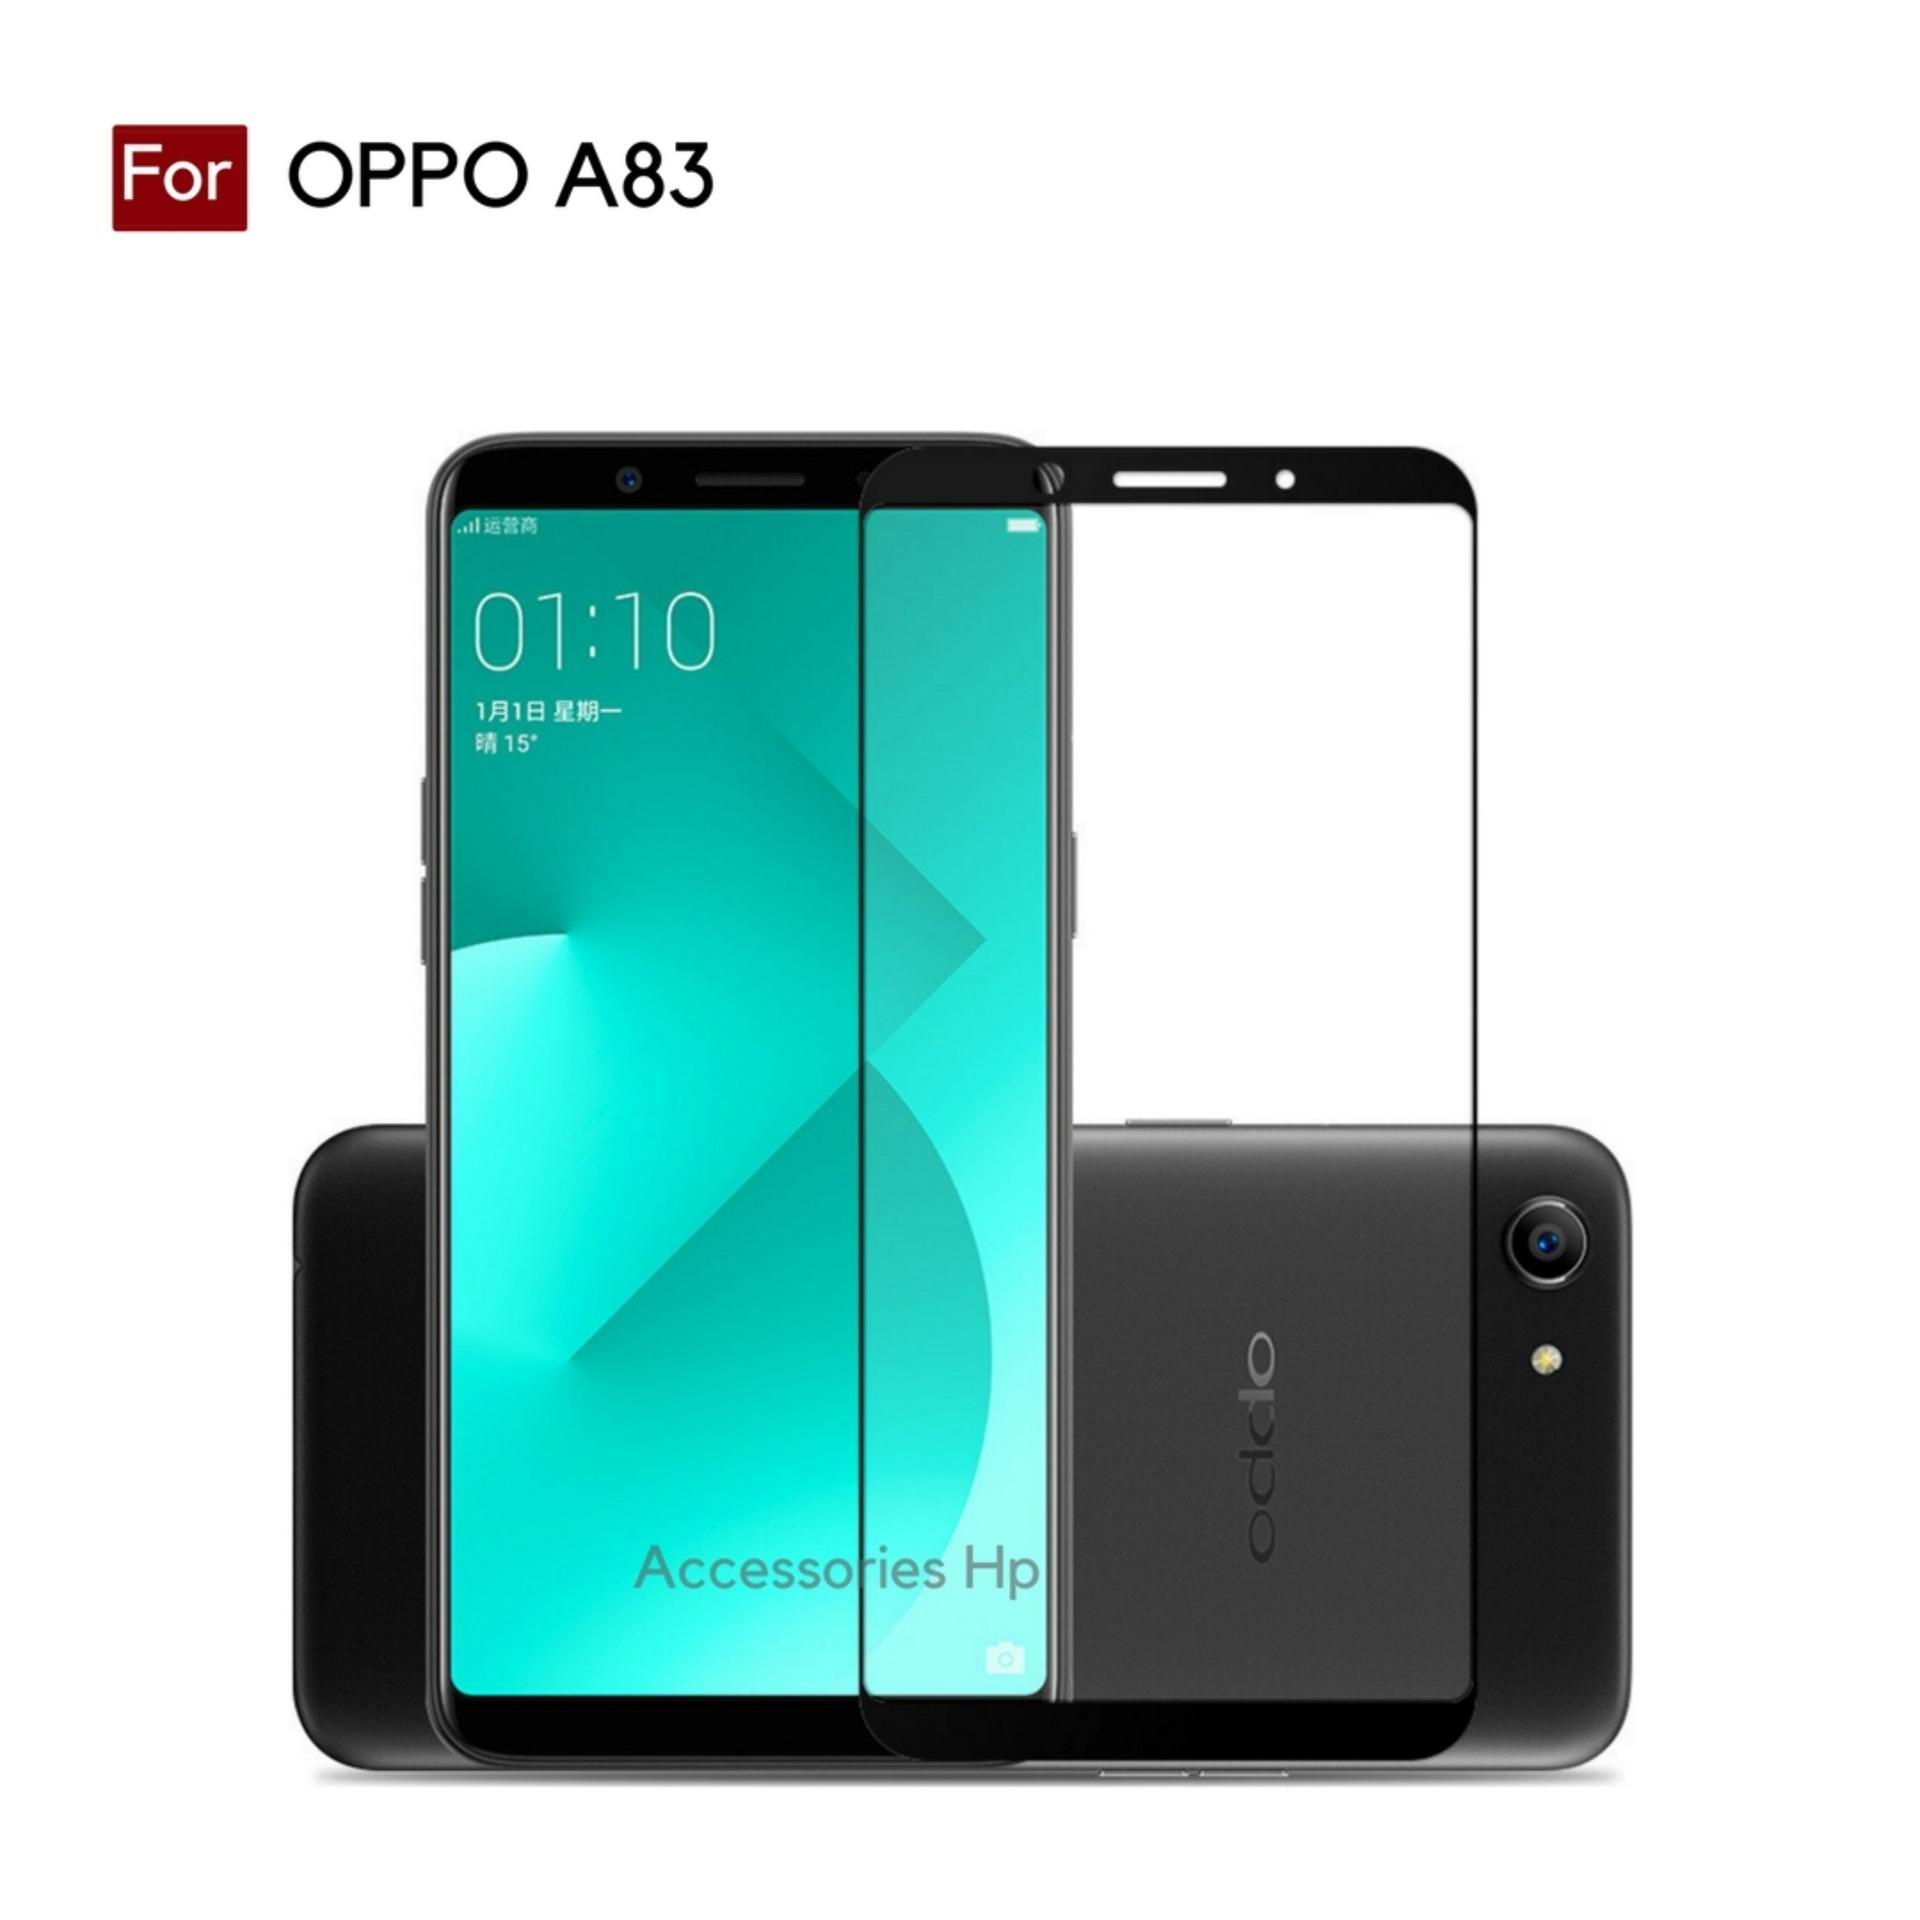 Accessories Hp Full Cover Tempered Glass Warna Screen Protector for OPPO A83 - Black